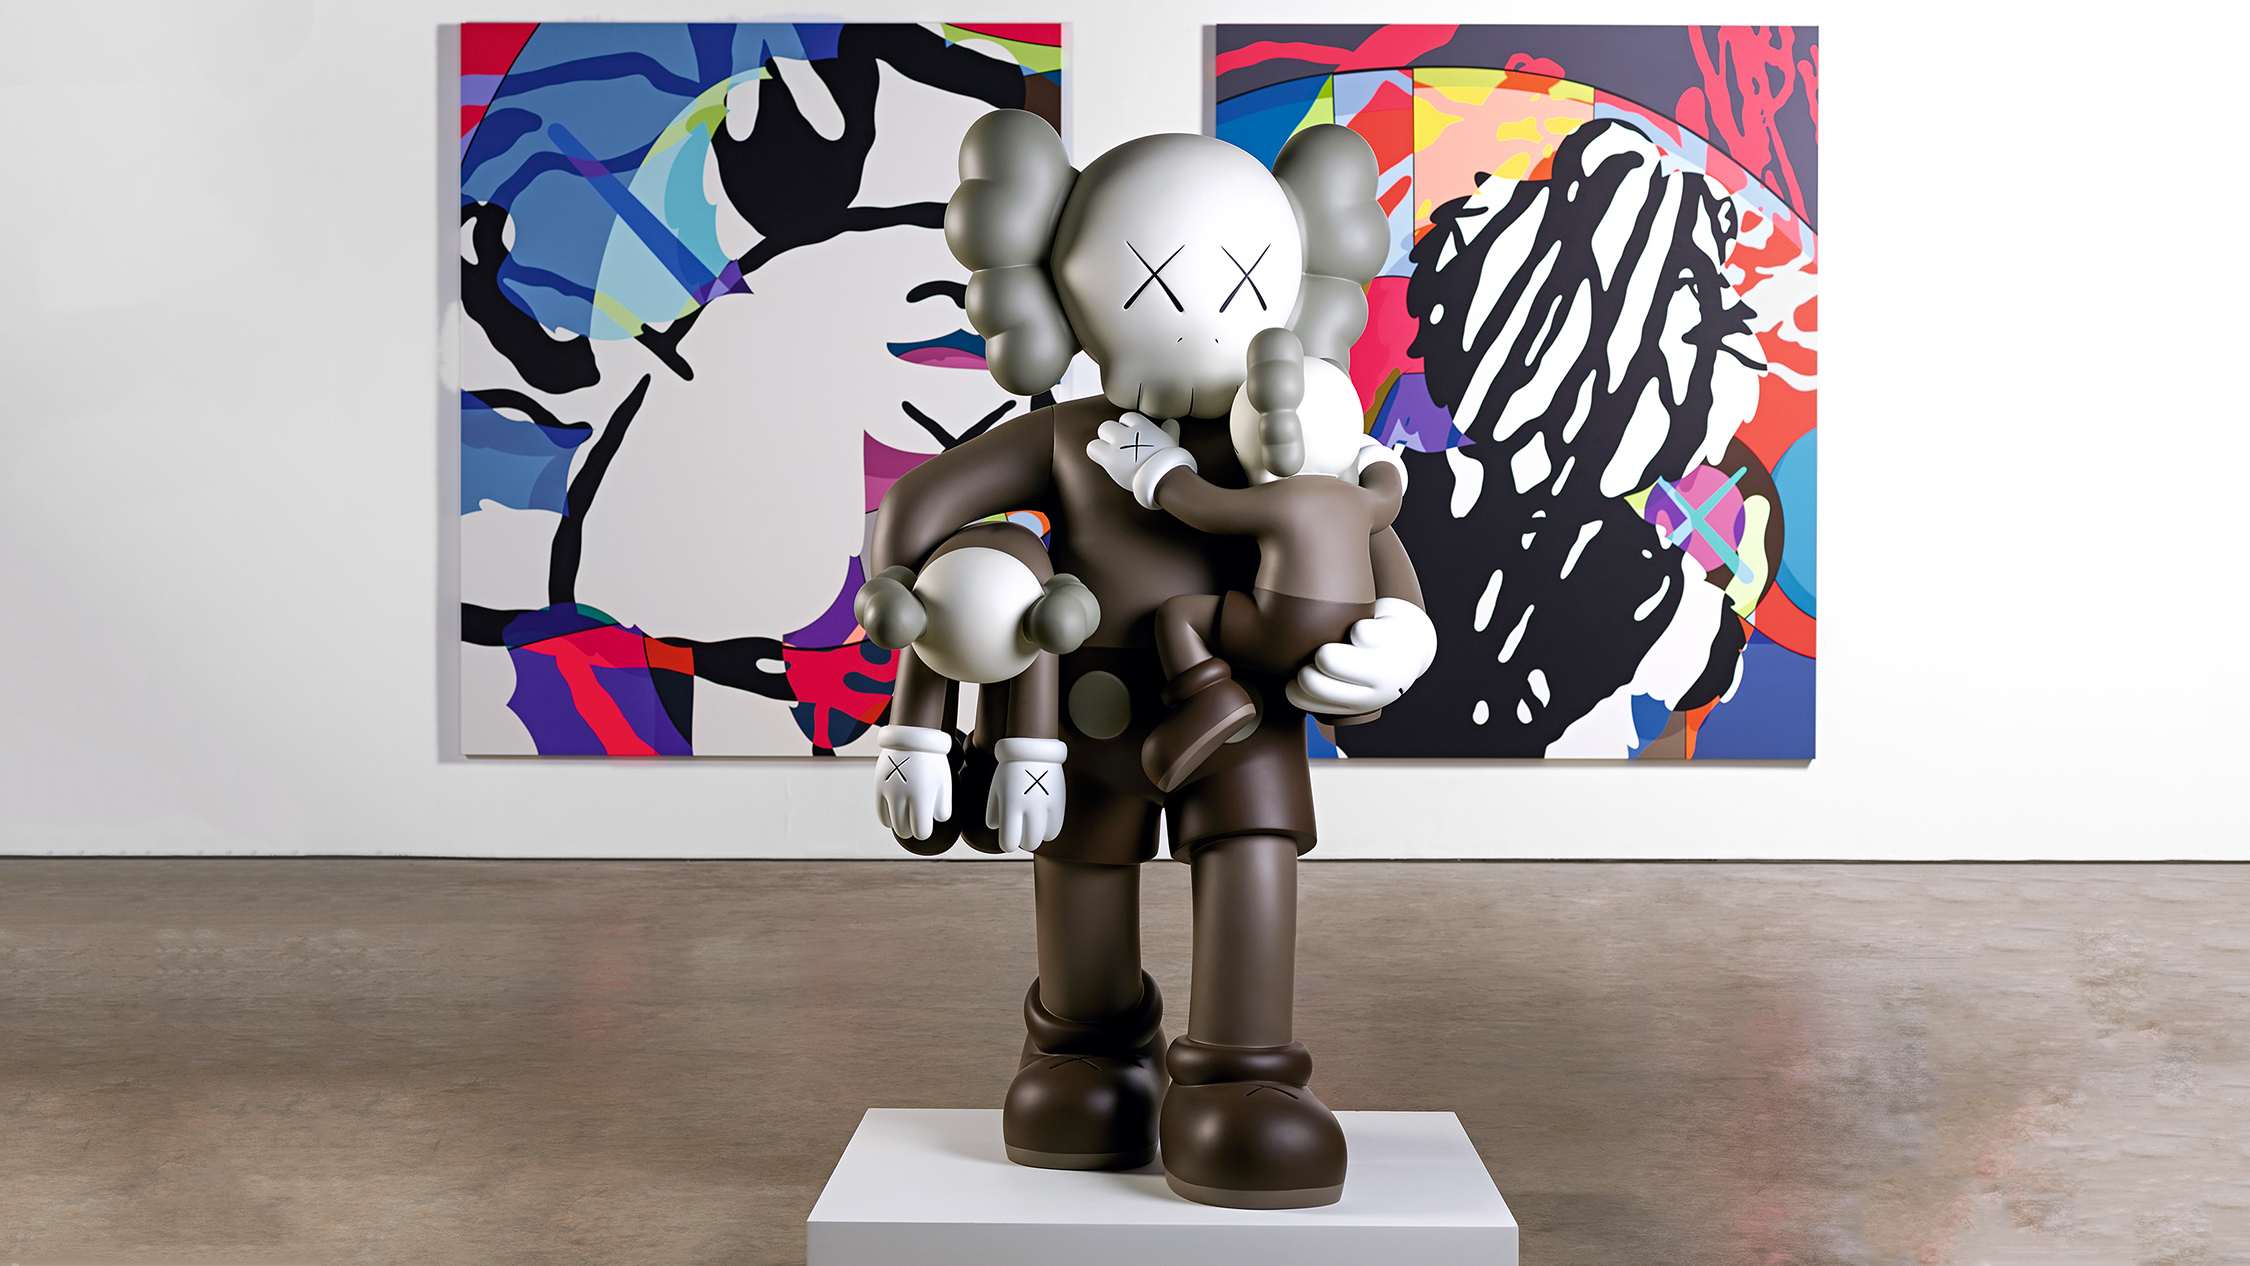 KAWS, 'CLEAN SLATE' (foreground) 2015, 'SURVIVAL MACHINE' (background) 2015, Photograph: Jonty Wilde